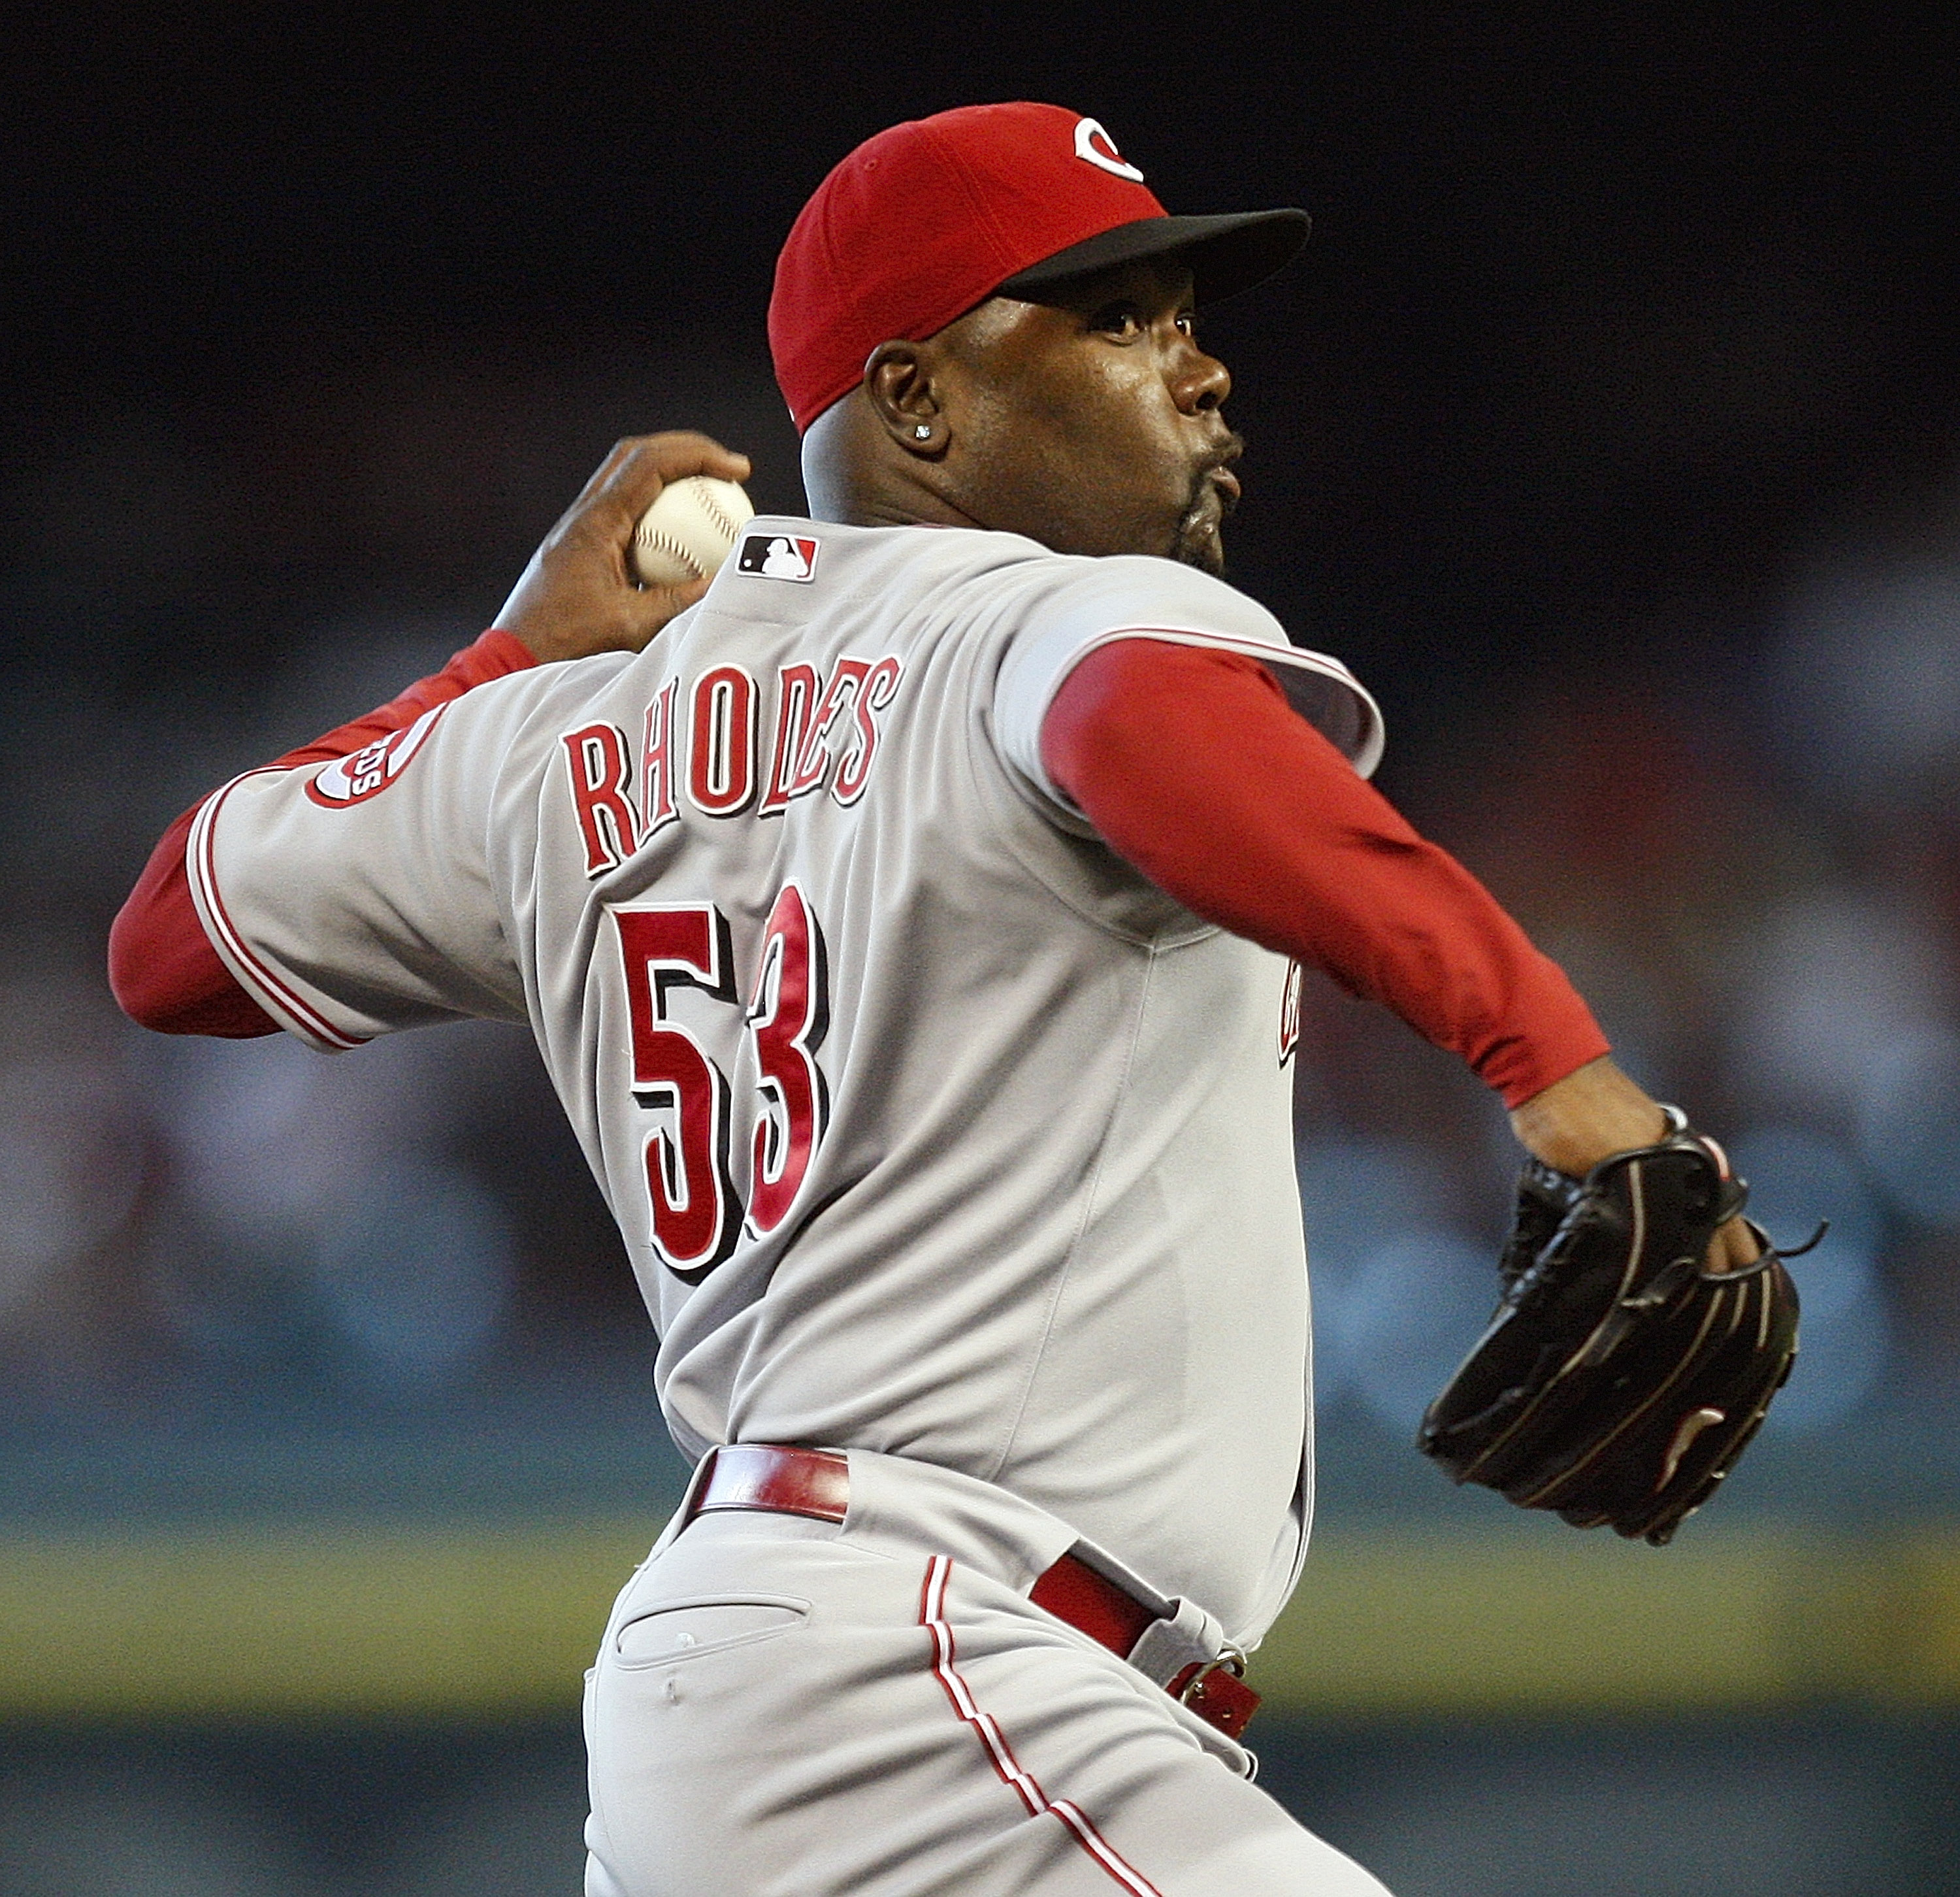 HOUSTON - JULY 25:  Arthur Rhodes #53 of the Cincinnati Reds pitches during the seventh inning against the Houston Astros on July 25, 2010 in Houston, Texas.  (Photo by Bob Levey/Getty Images)